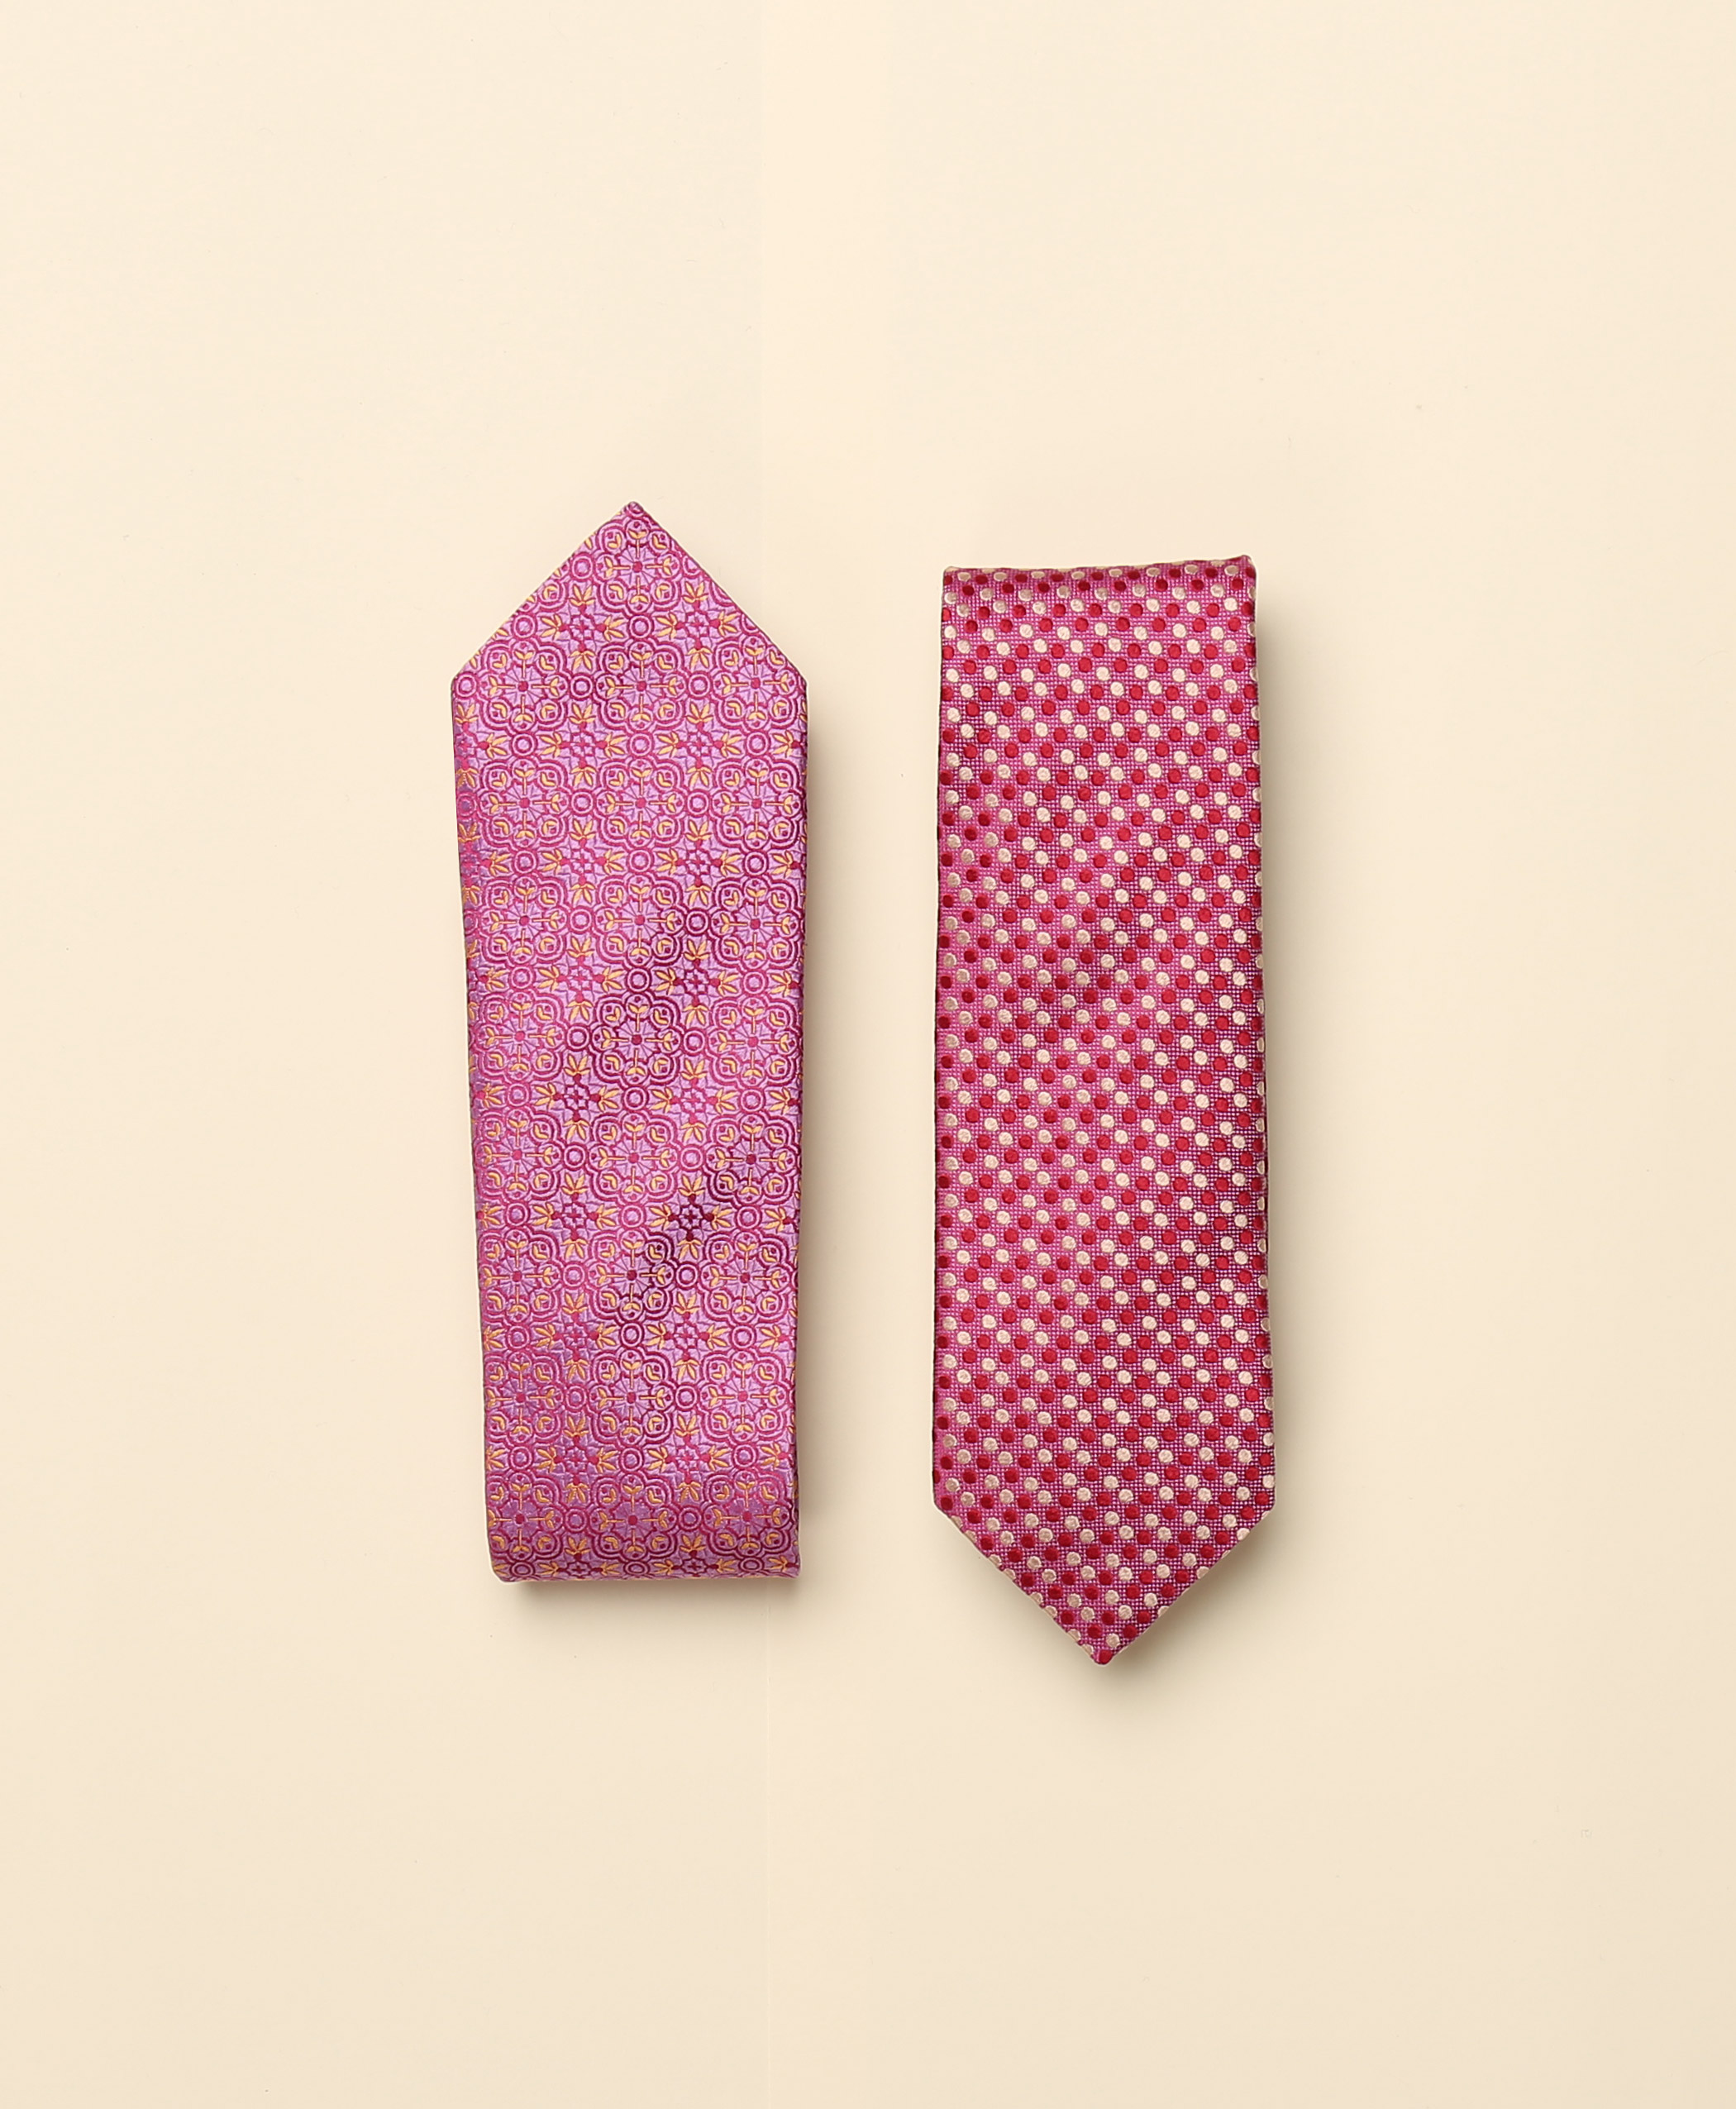 Tie from Penrose